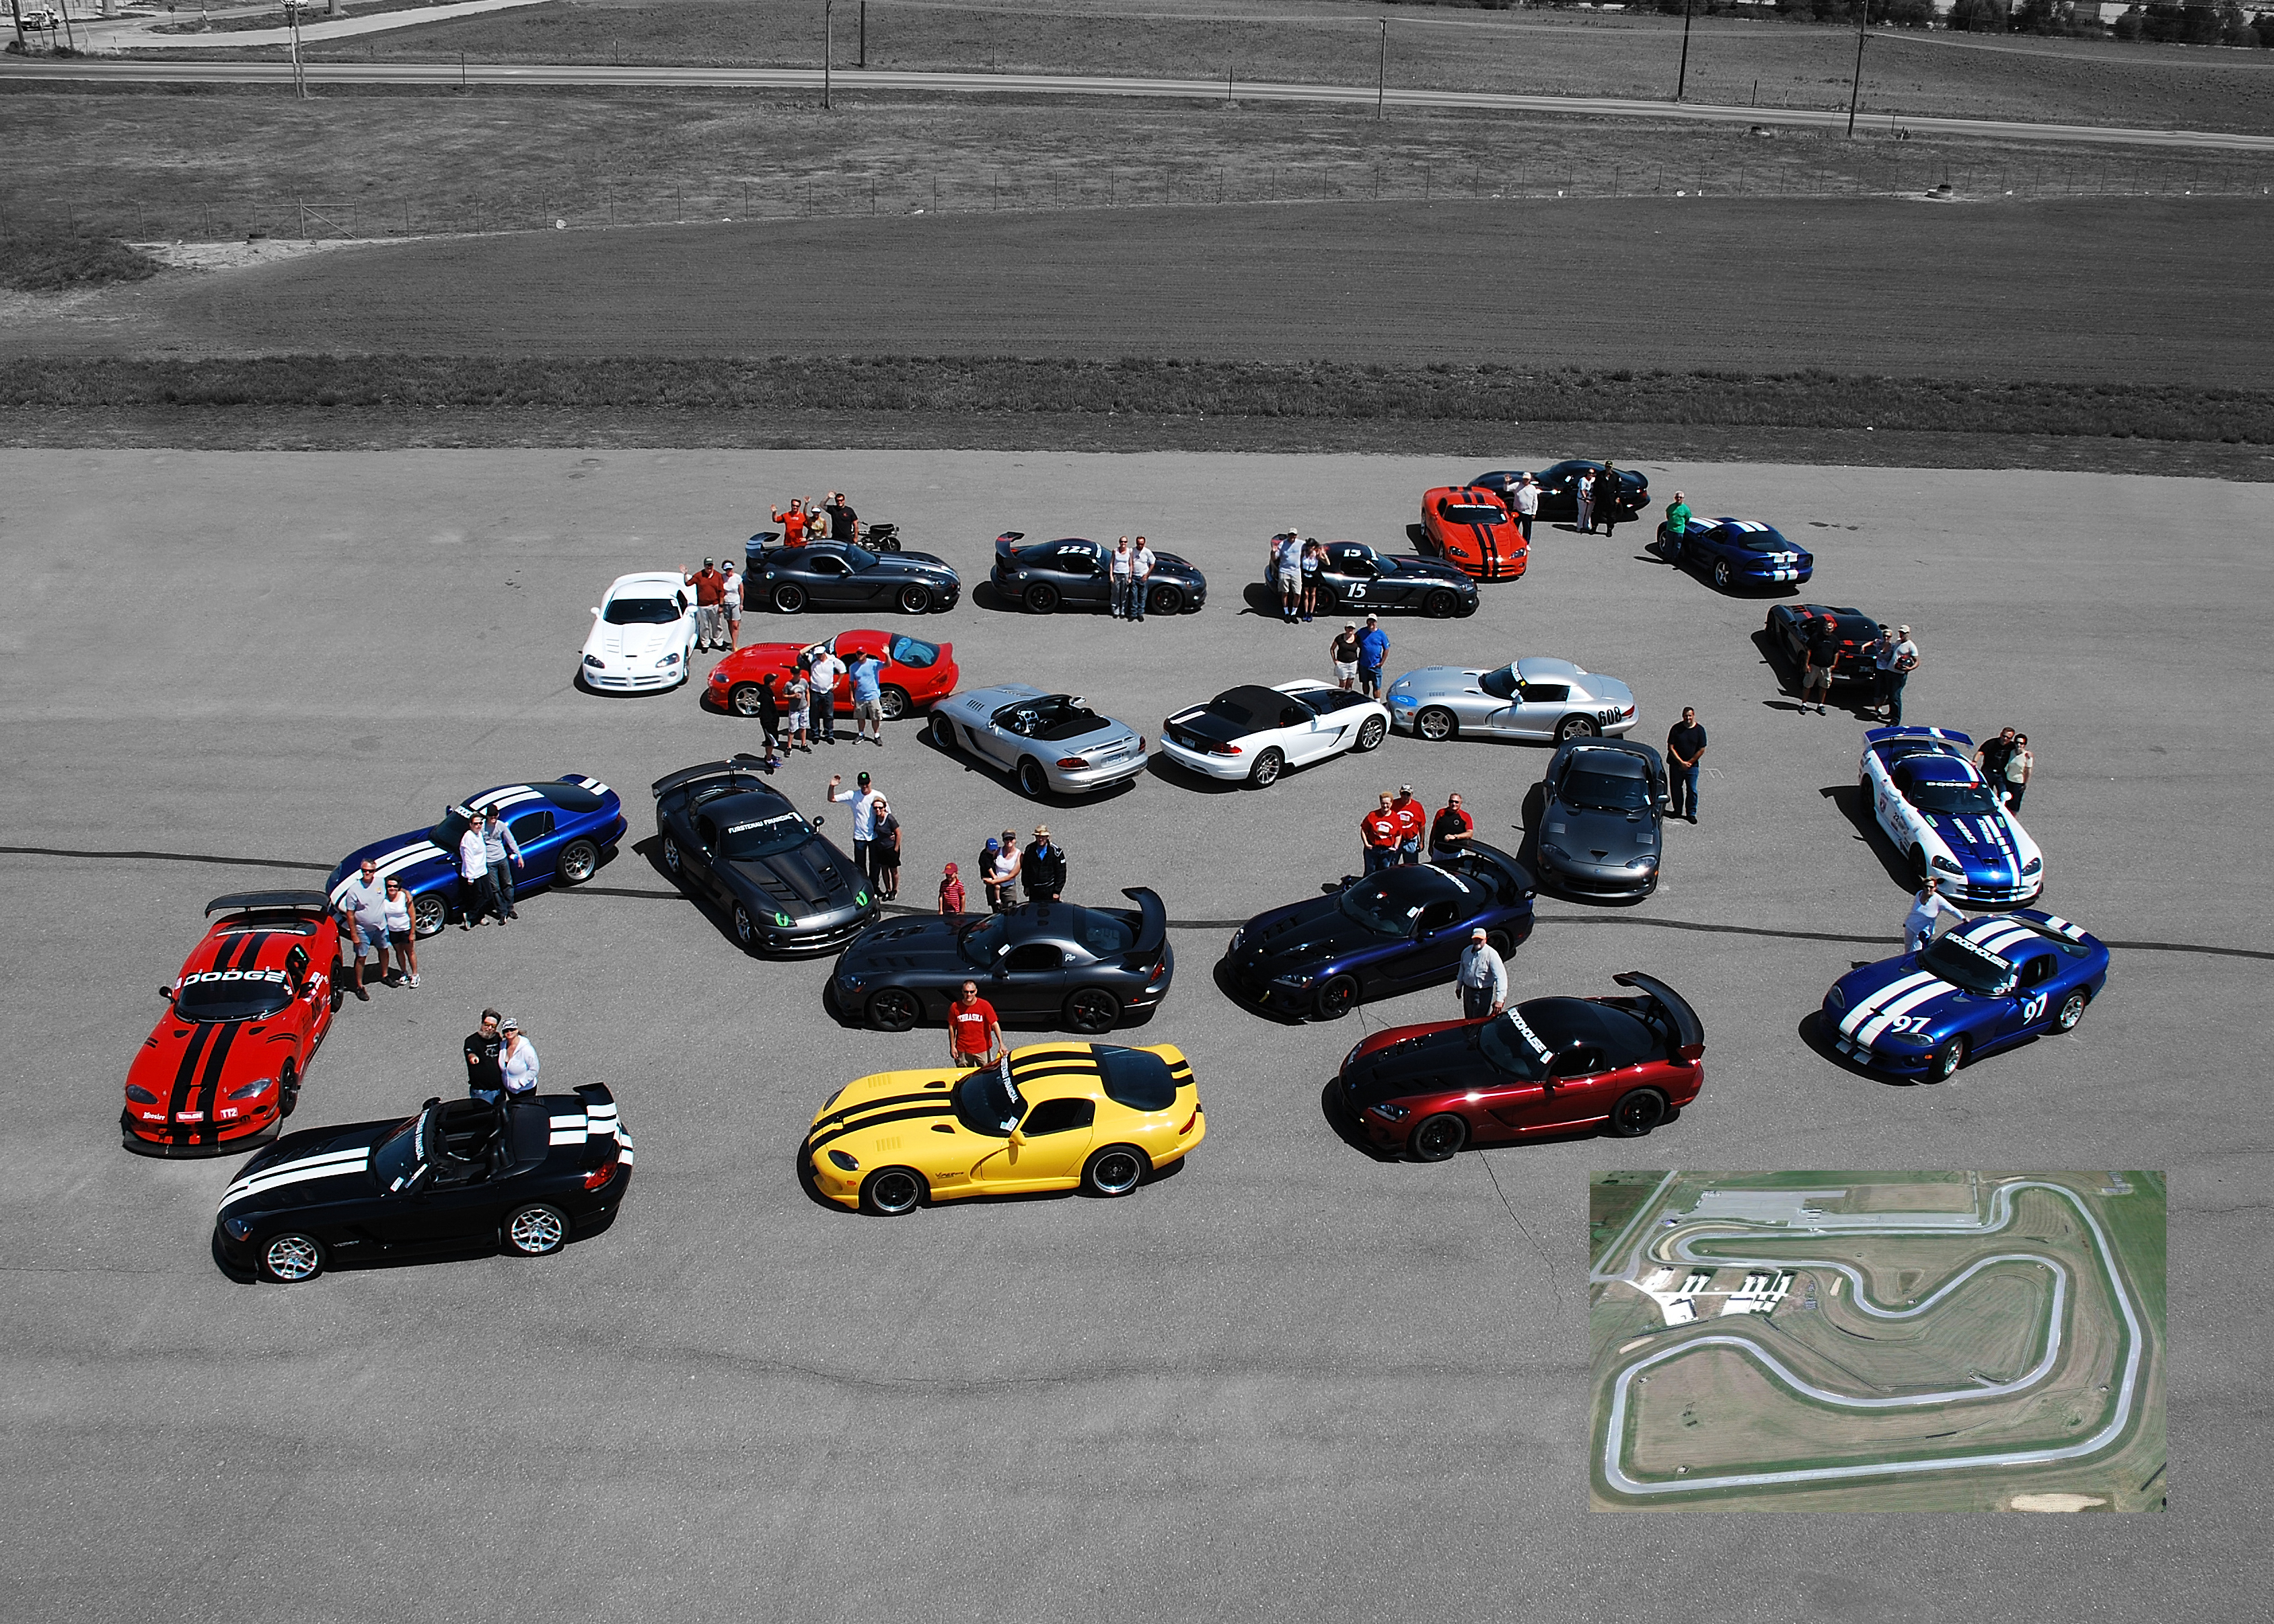 Viper Rendezvous 2012 Group Photo 5 x 7 edit with track map FINAL NO SPONSOR